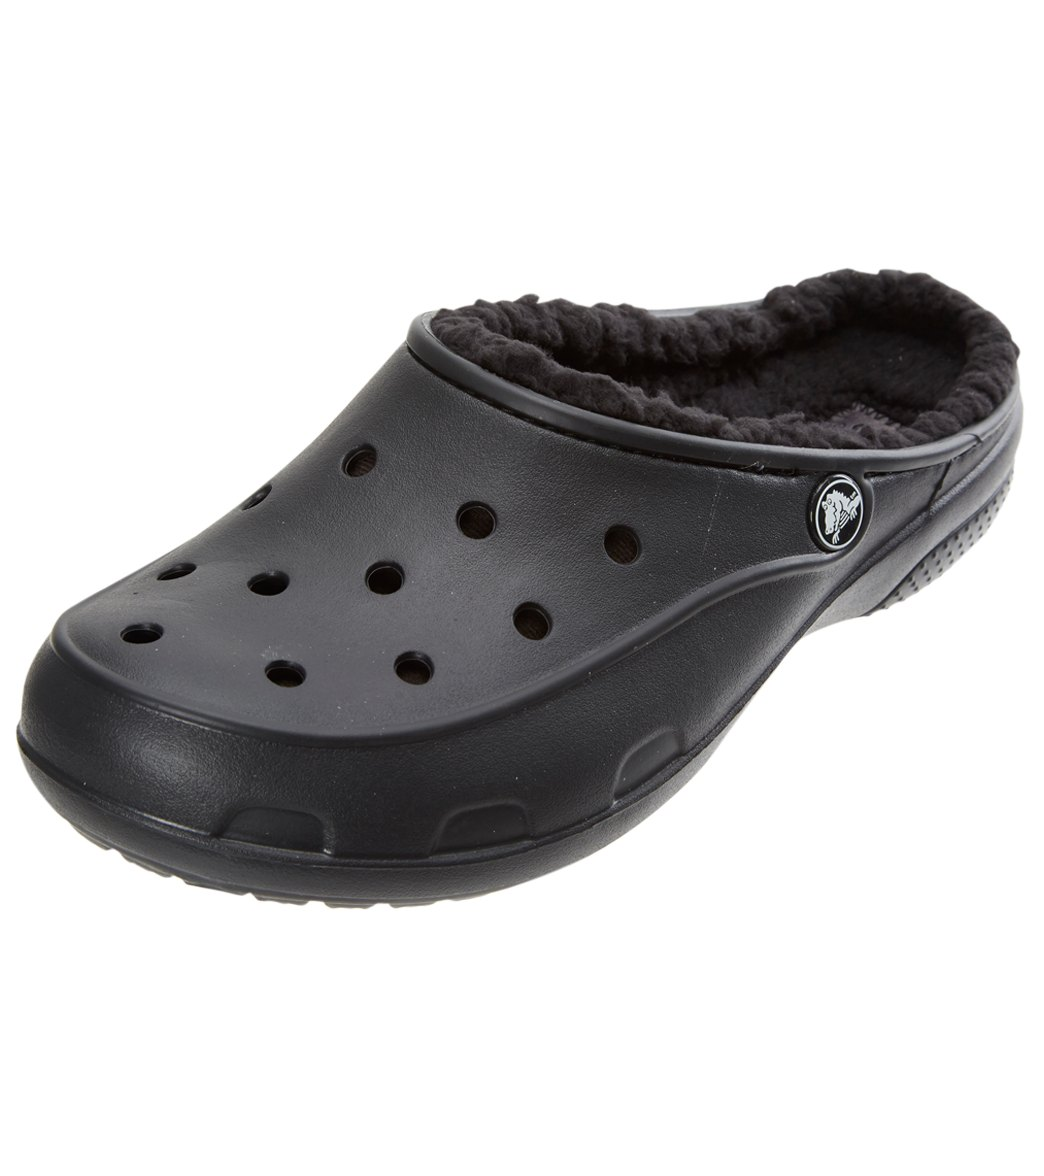 c5e9320cd Crocs Women s Crocs Freesail Plush Fuzz Lined Clog at SwimOutlet.com